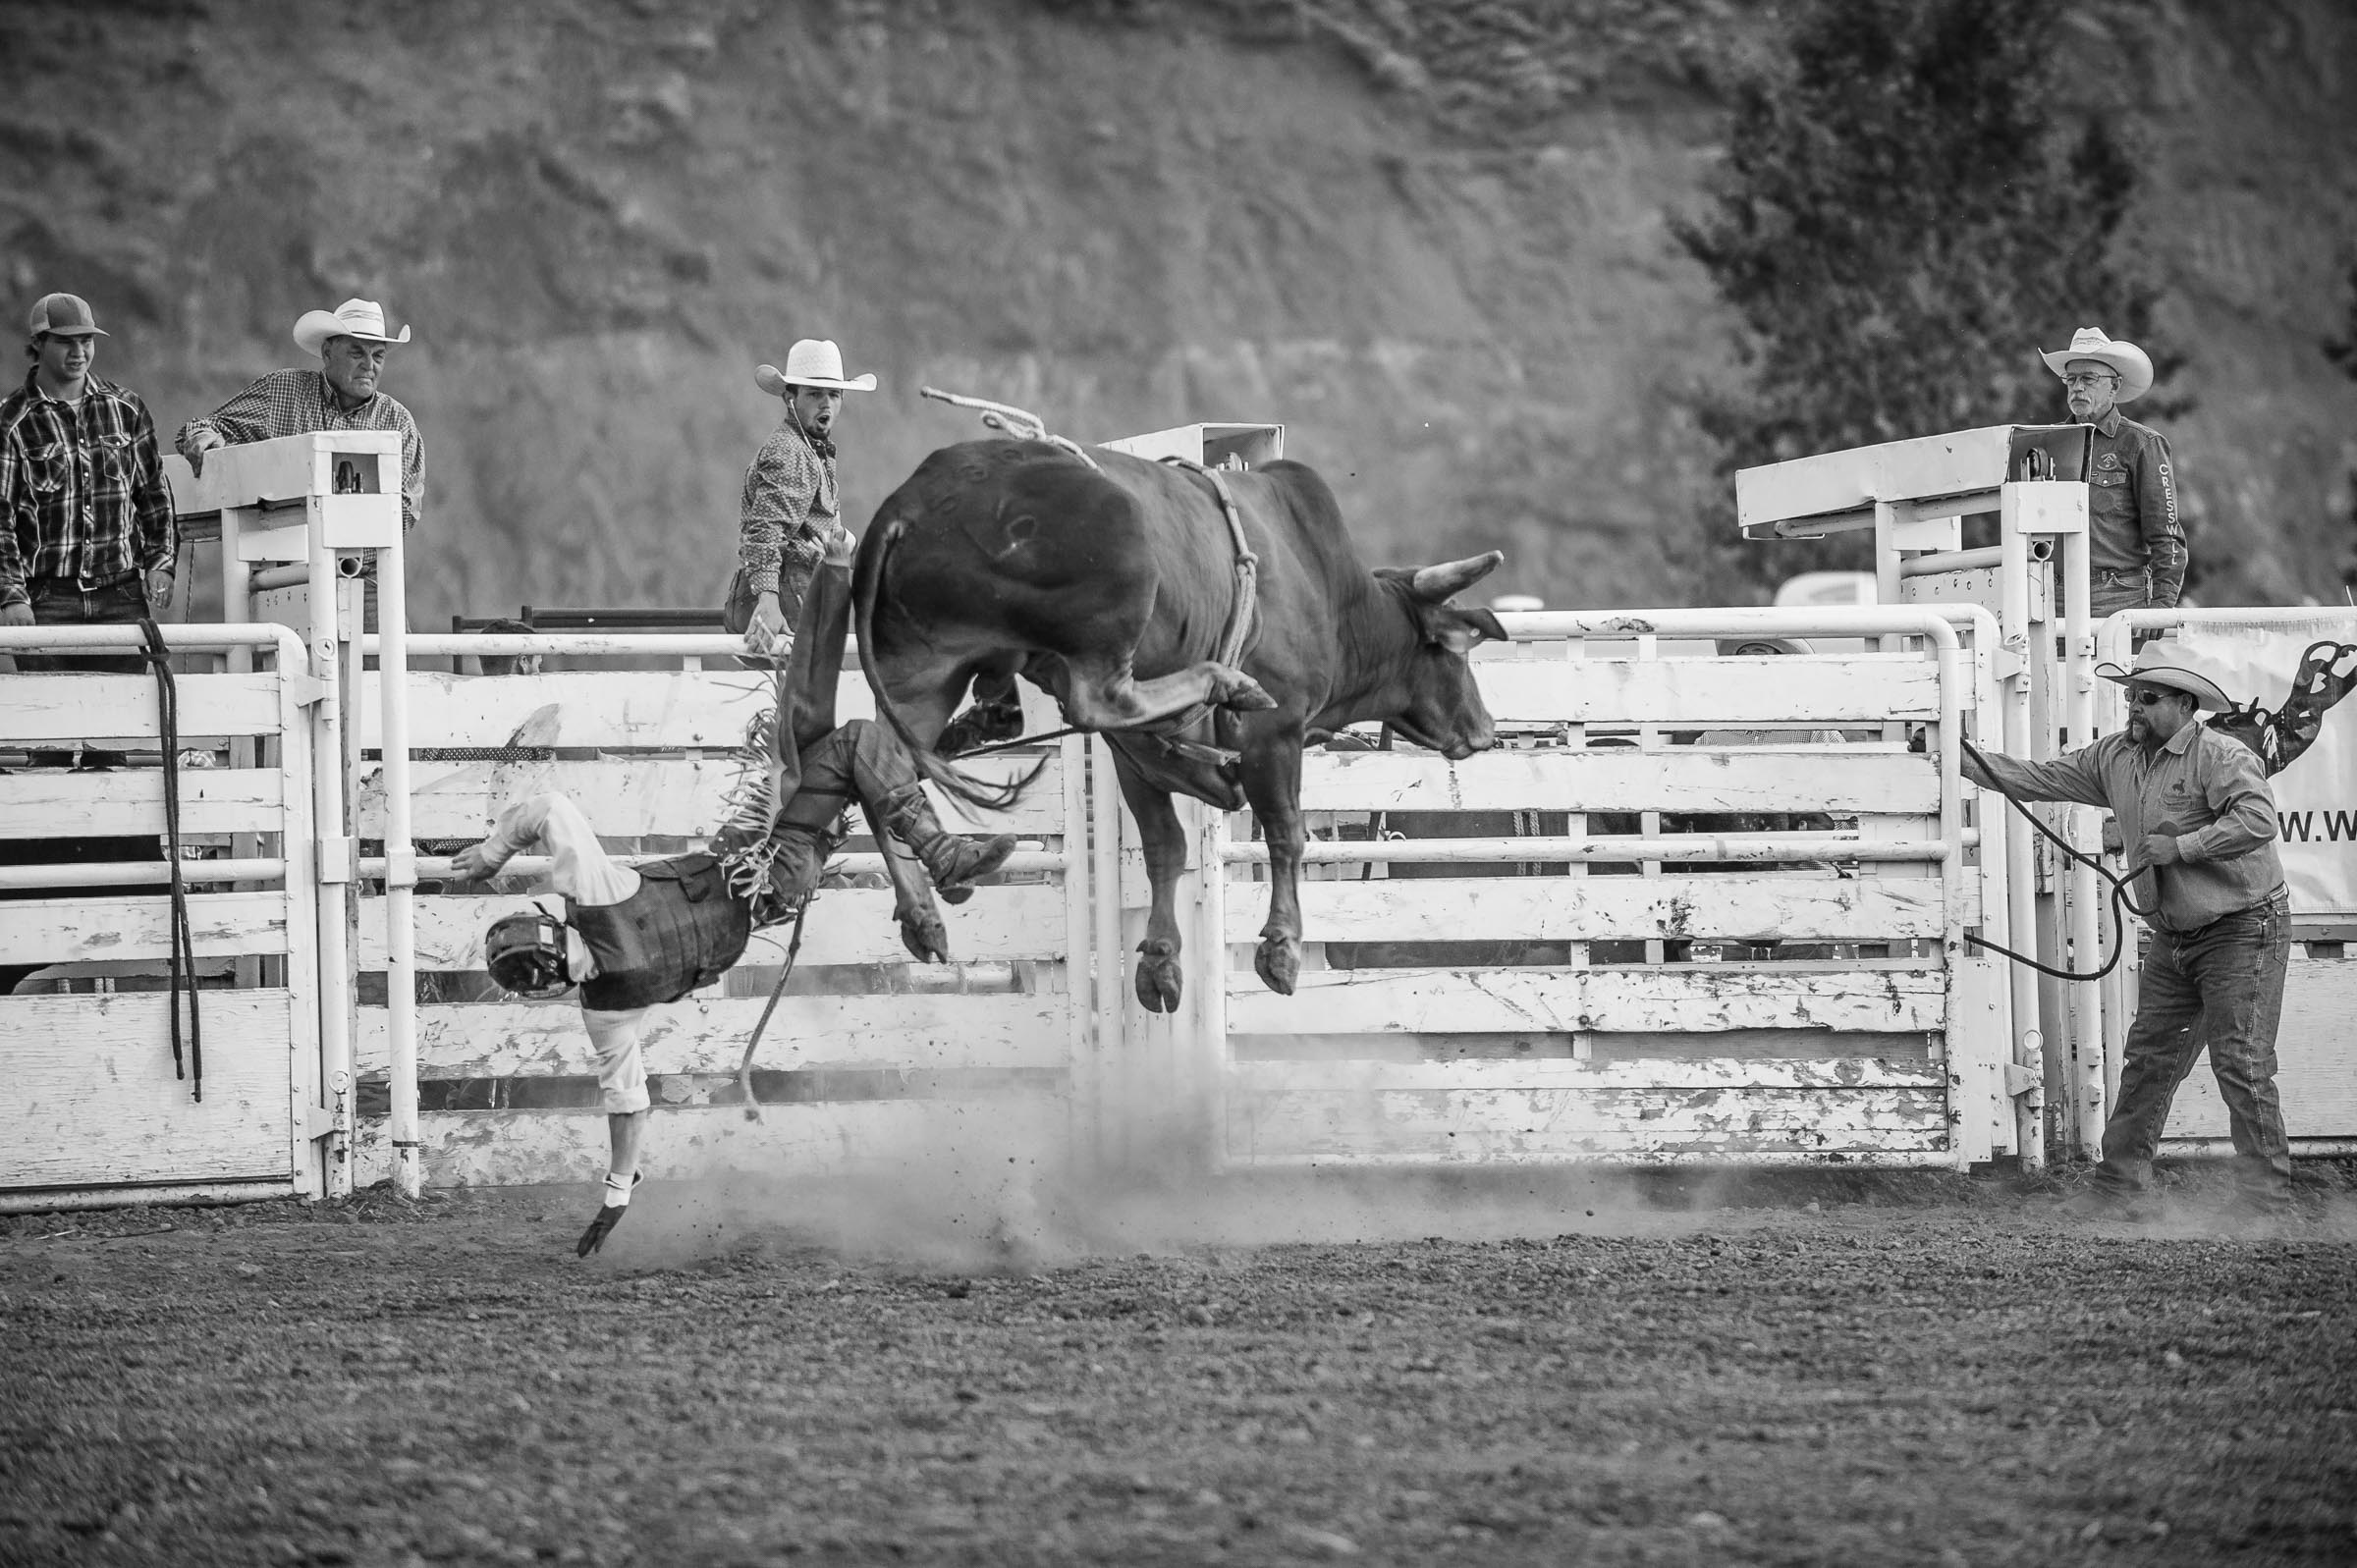 rodeo_whisky-bent_bynum-2459.JPG